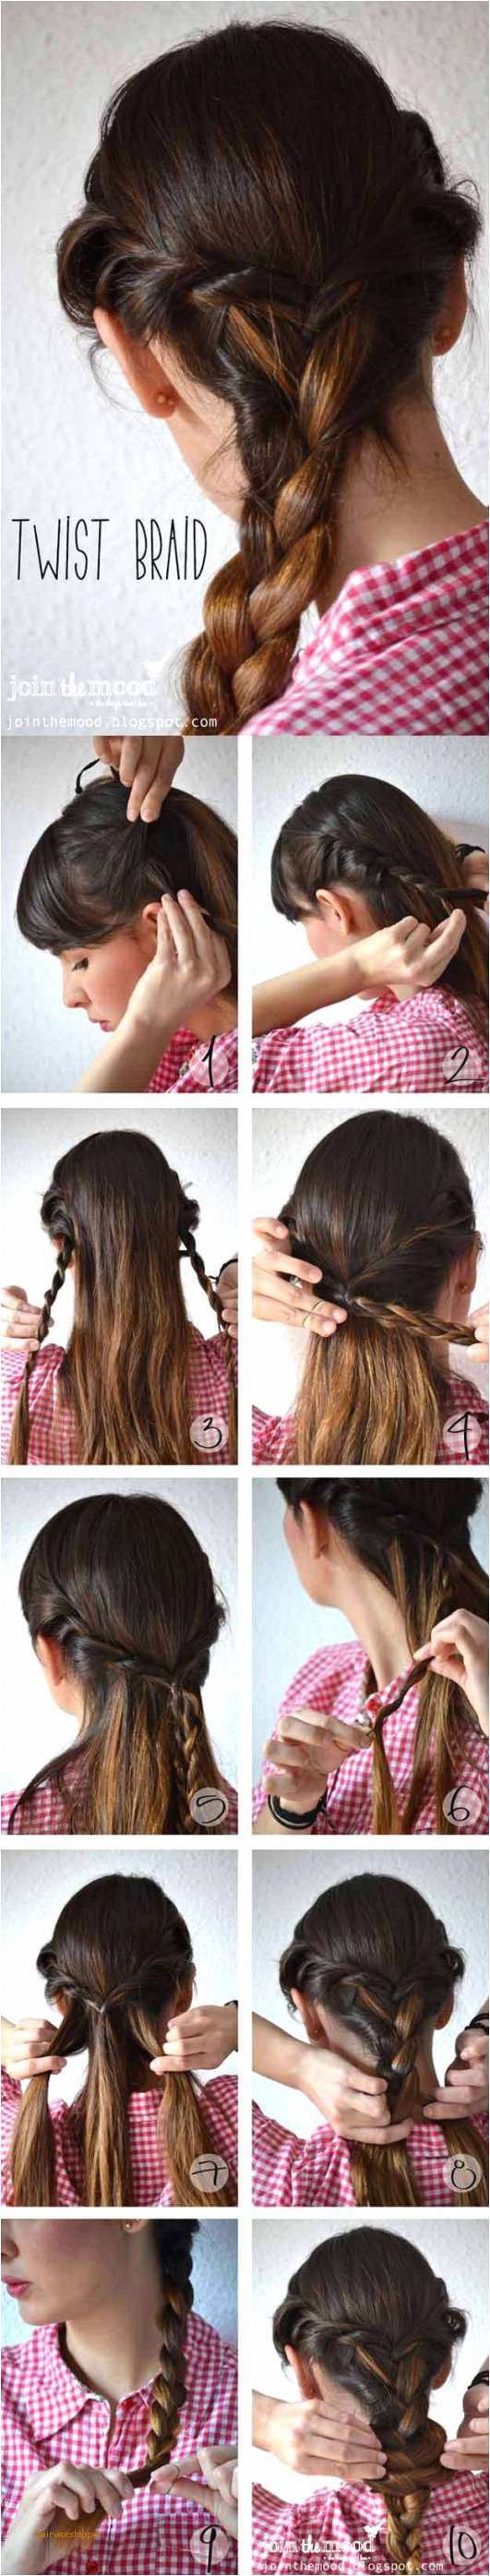 Easy Diy Hairstyles Step by Step New Easy Hairstyle Tutorials for Medium Length